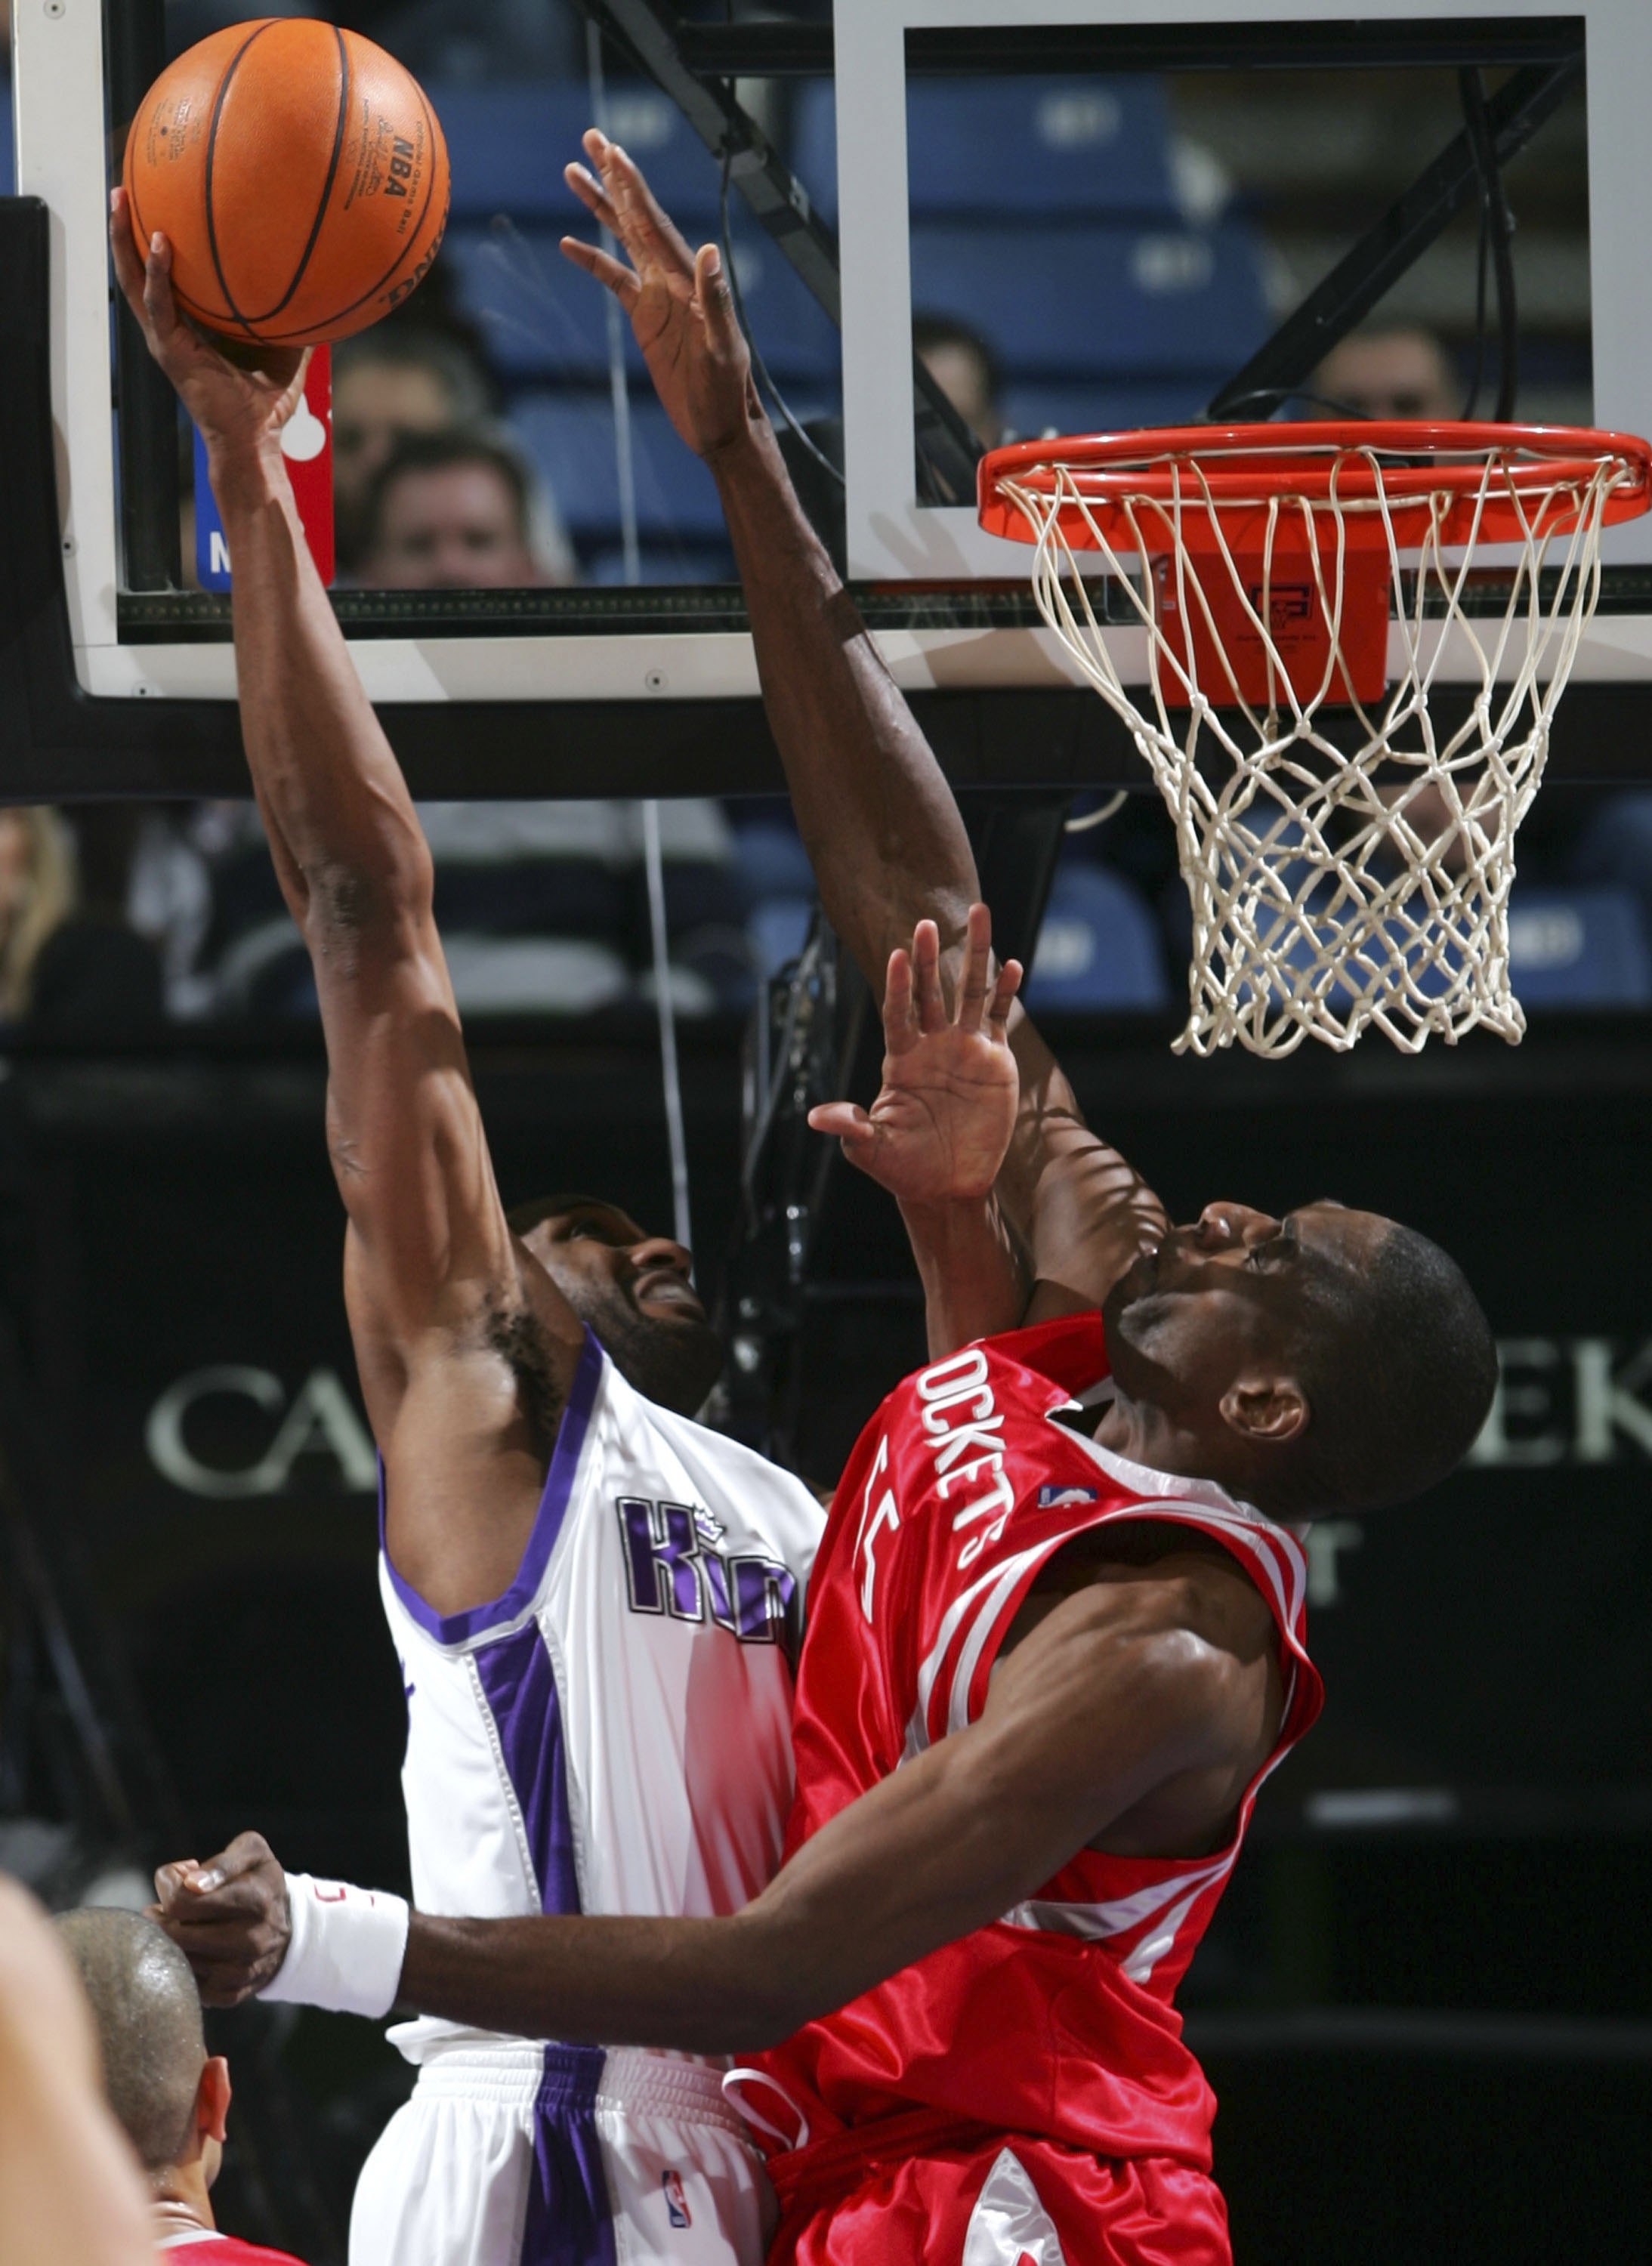 SACRAMENTO, CA - JANUARY 13:  Dikembe Mutombo #55 of the Houston Rockets tries to block a shot from Shareef Abdur-Rahim #3 of the Sacramento Kings during an NBA game at Arco Arena January 13, 2007 in Sacramento, California.  NOTE TO USER: User expressly a